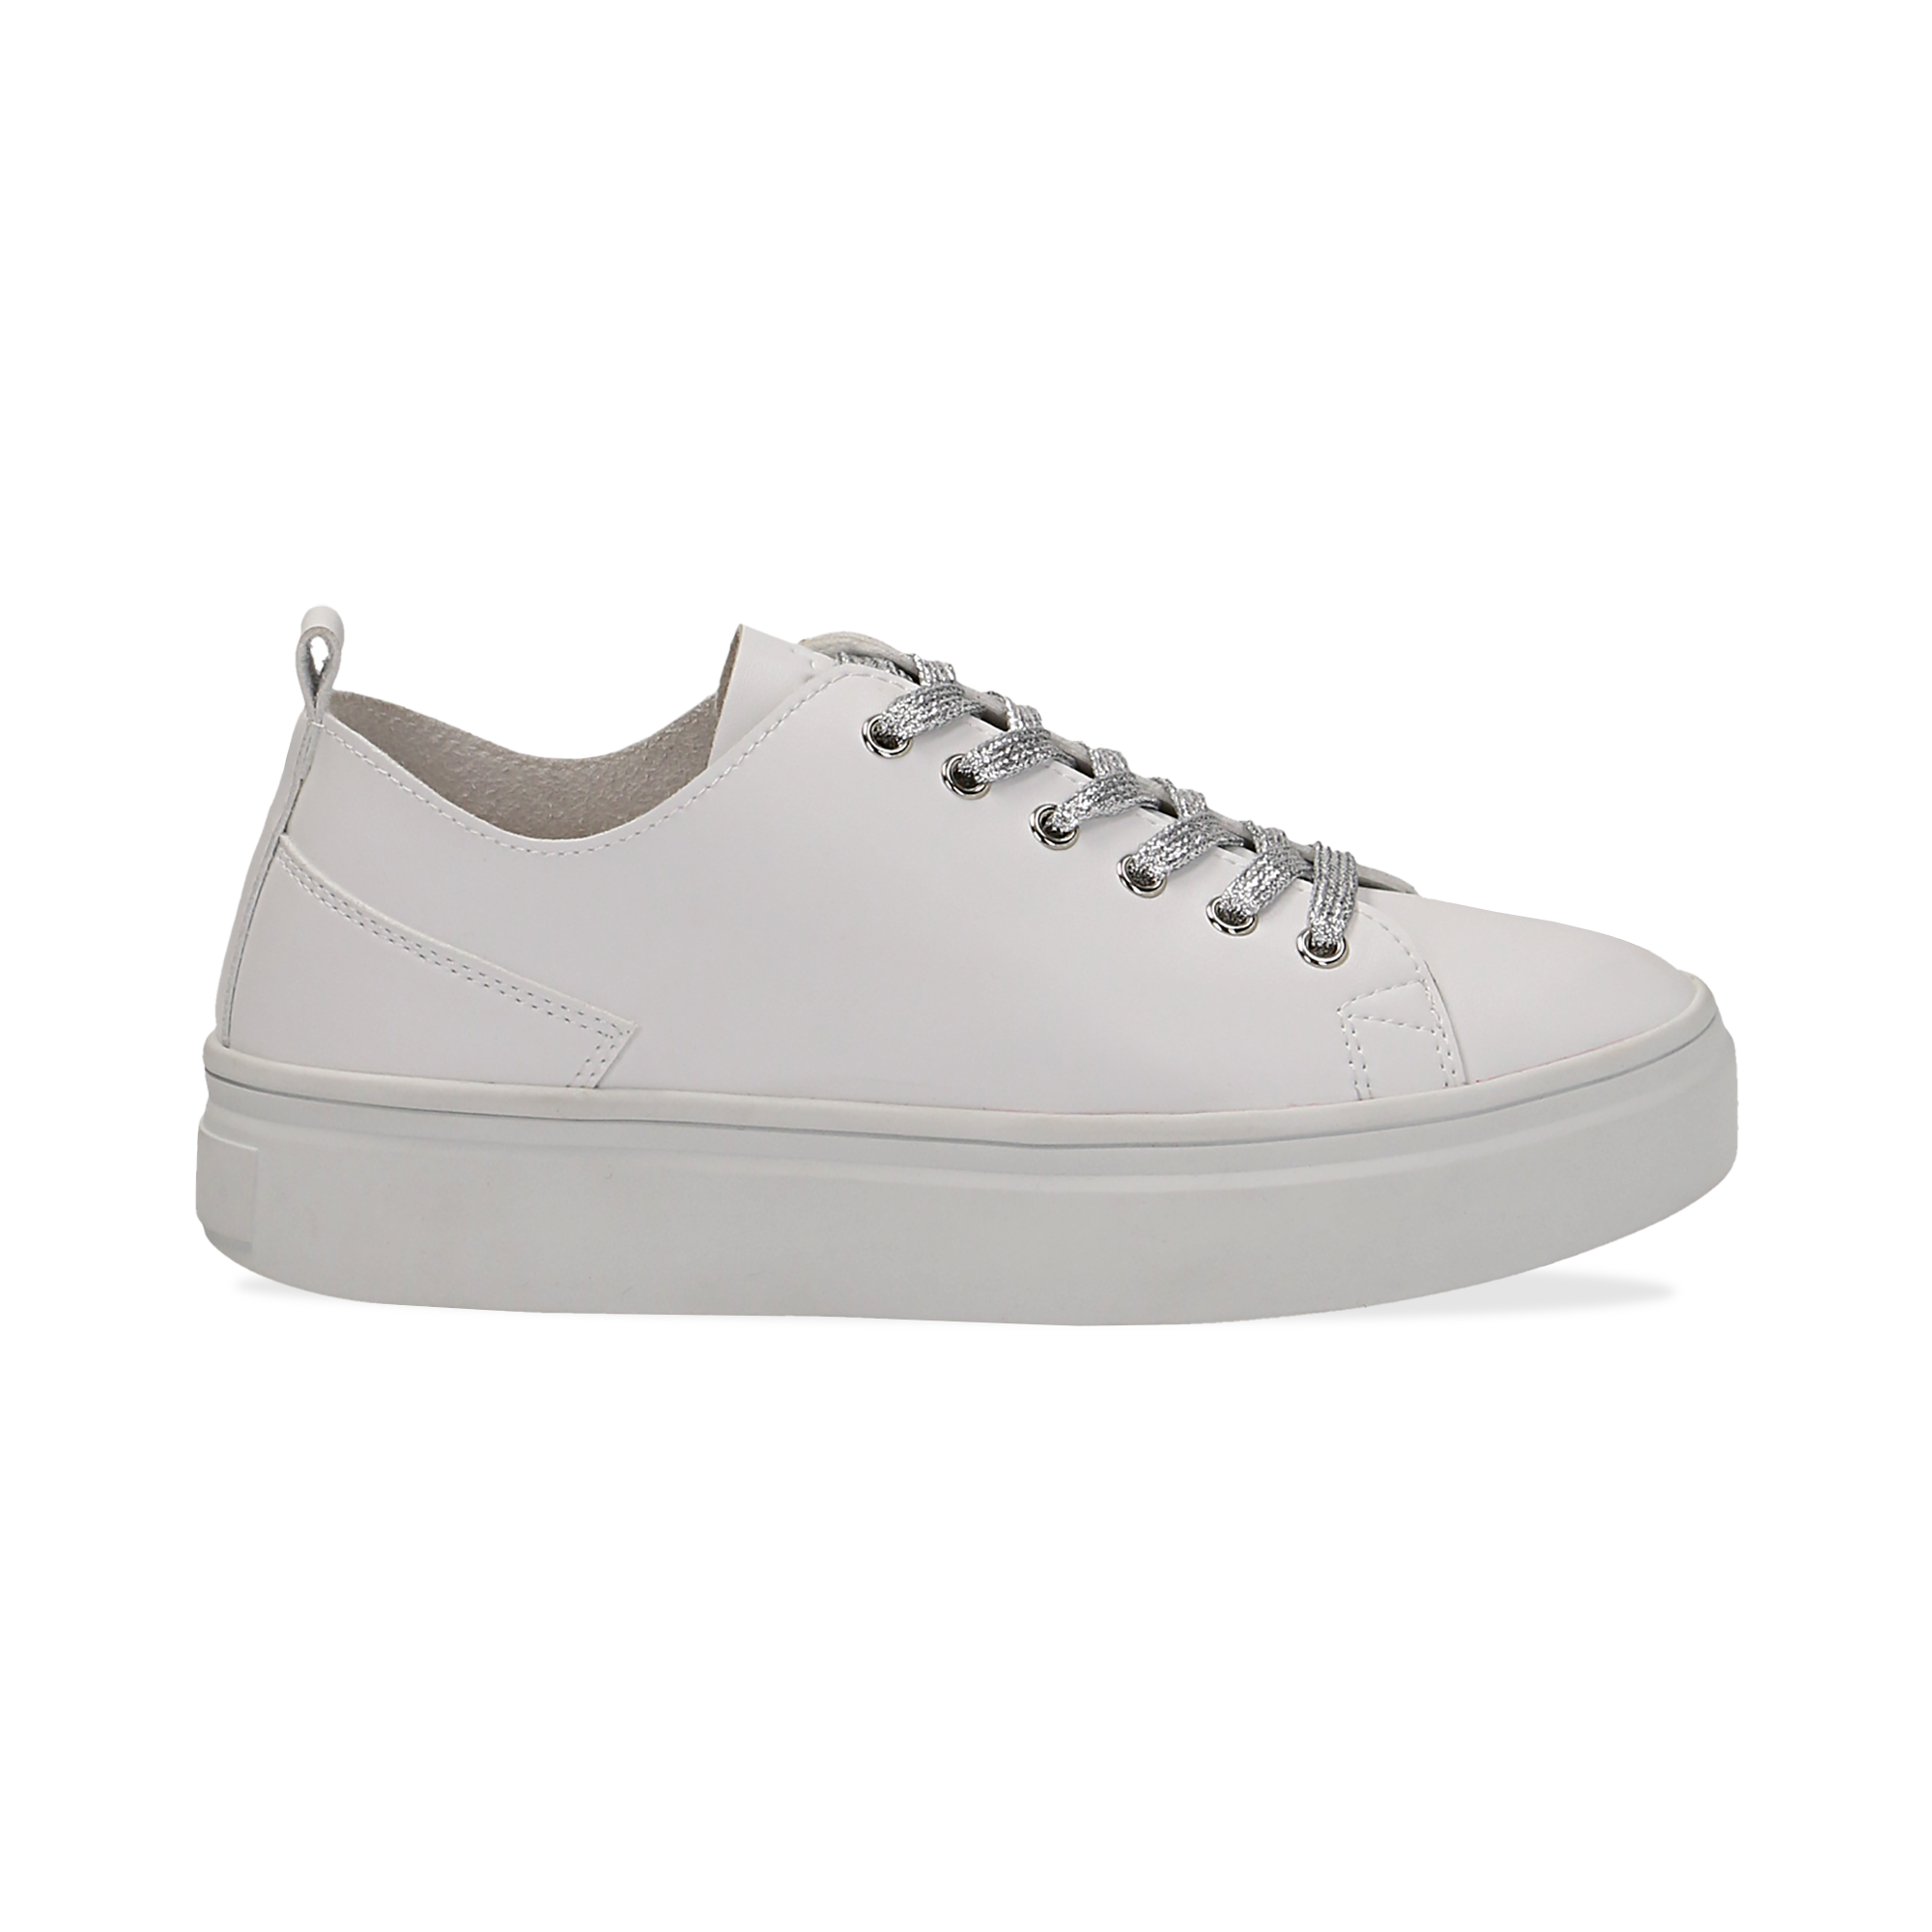 Sneakers de eco-piel color blanco